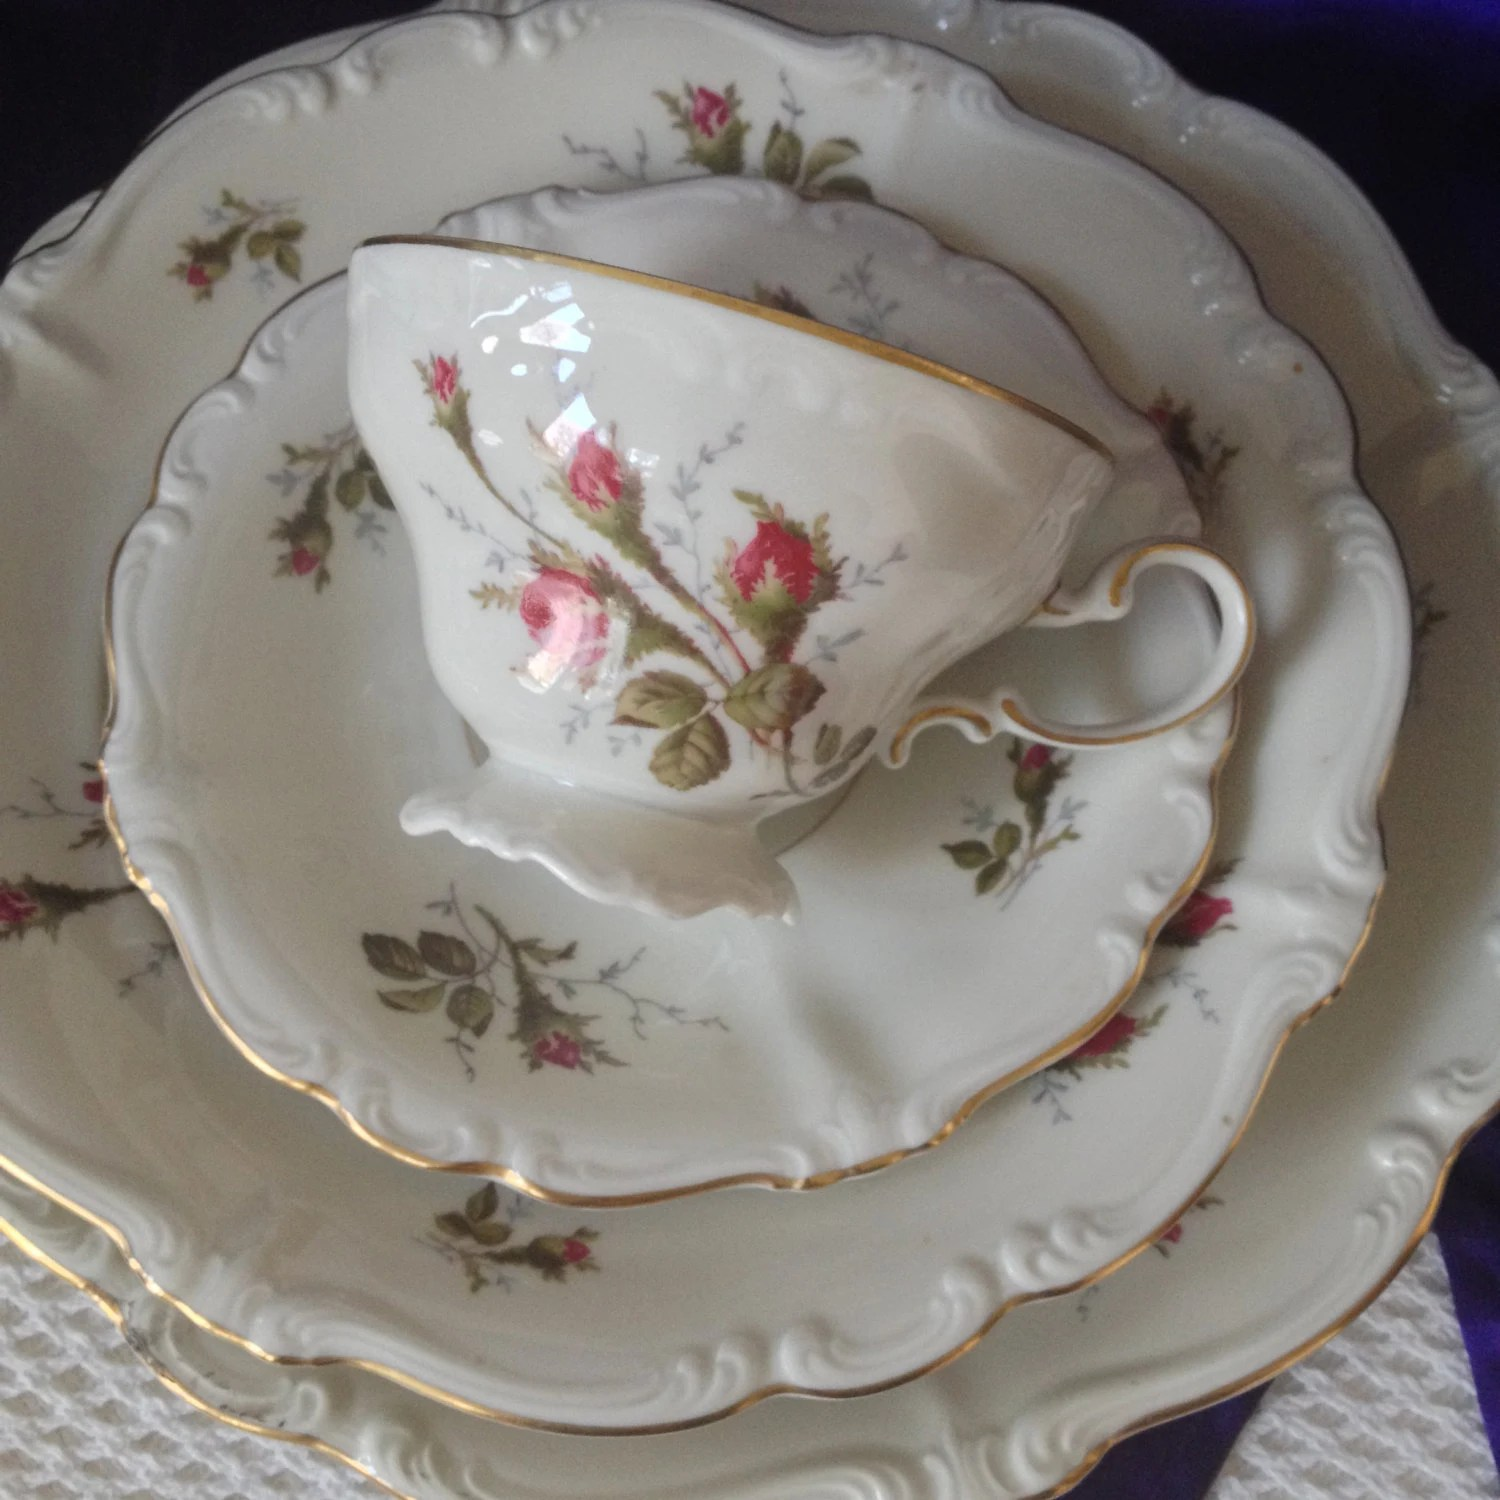 Bone China Porzellan Rosenthal Moss Rose 4 Piece Place Setting With Teacup